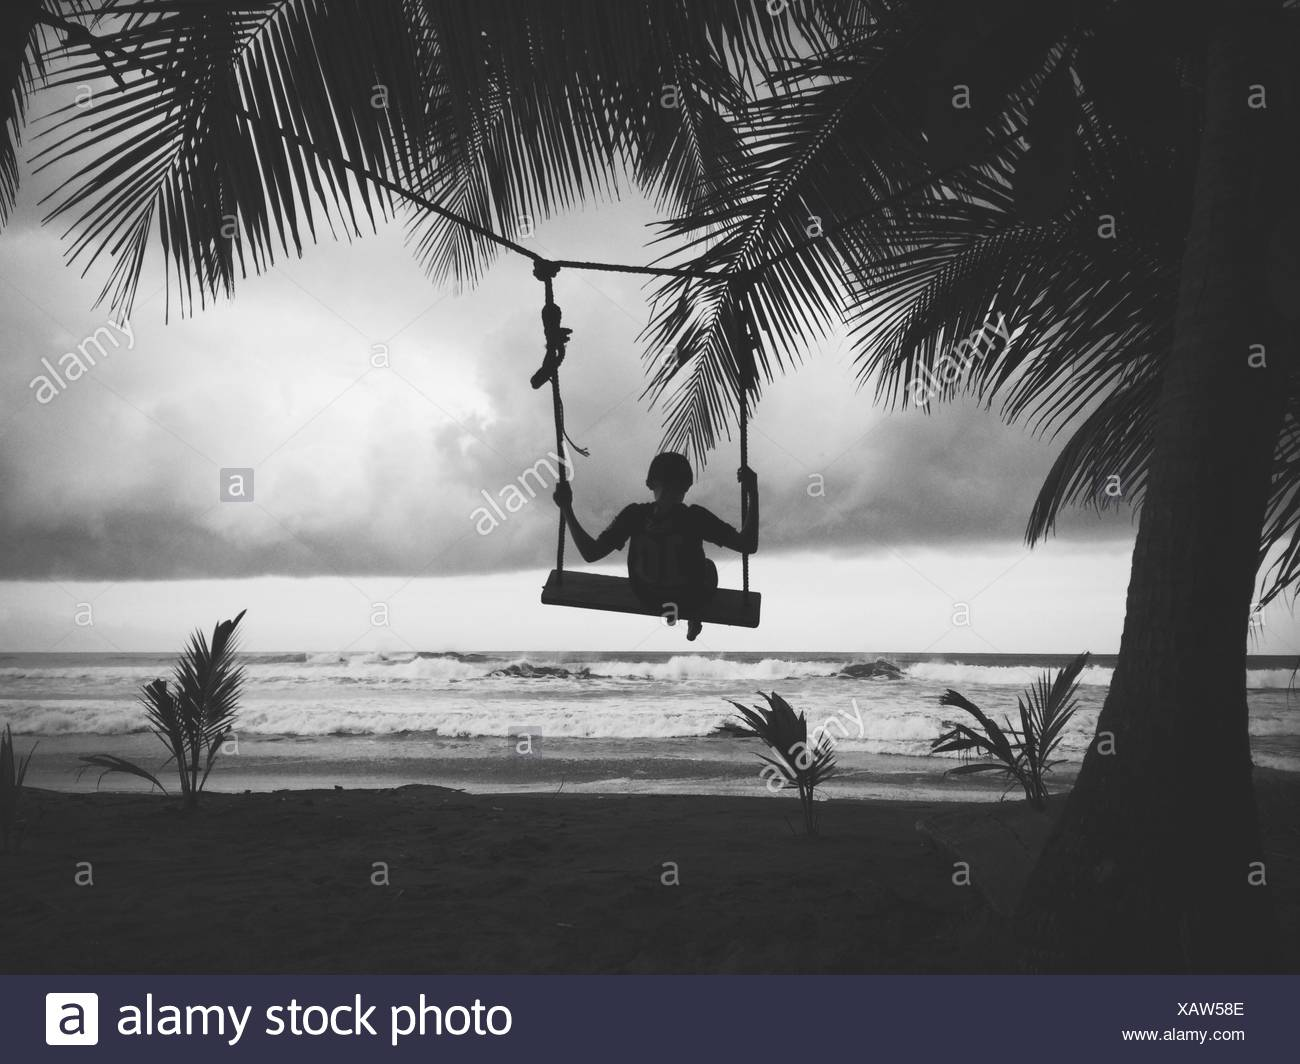 Silhouette of boy sitting on a swing on the beach stock image